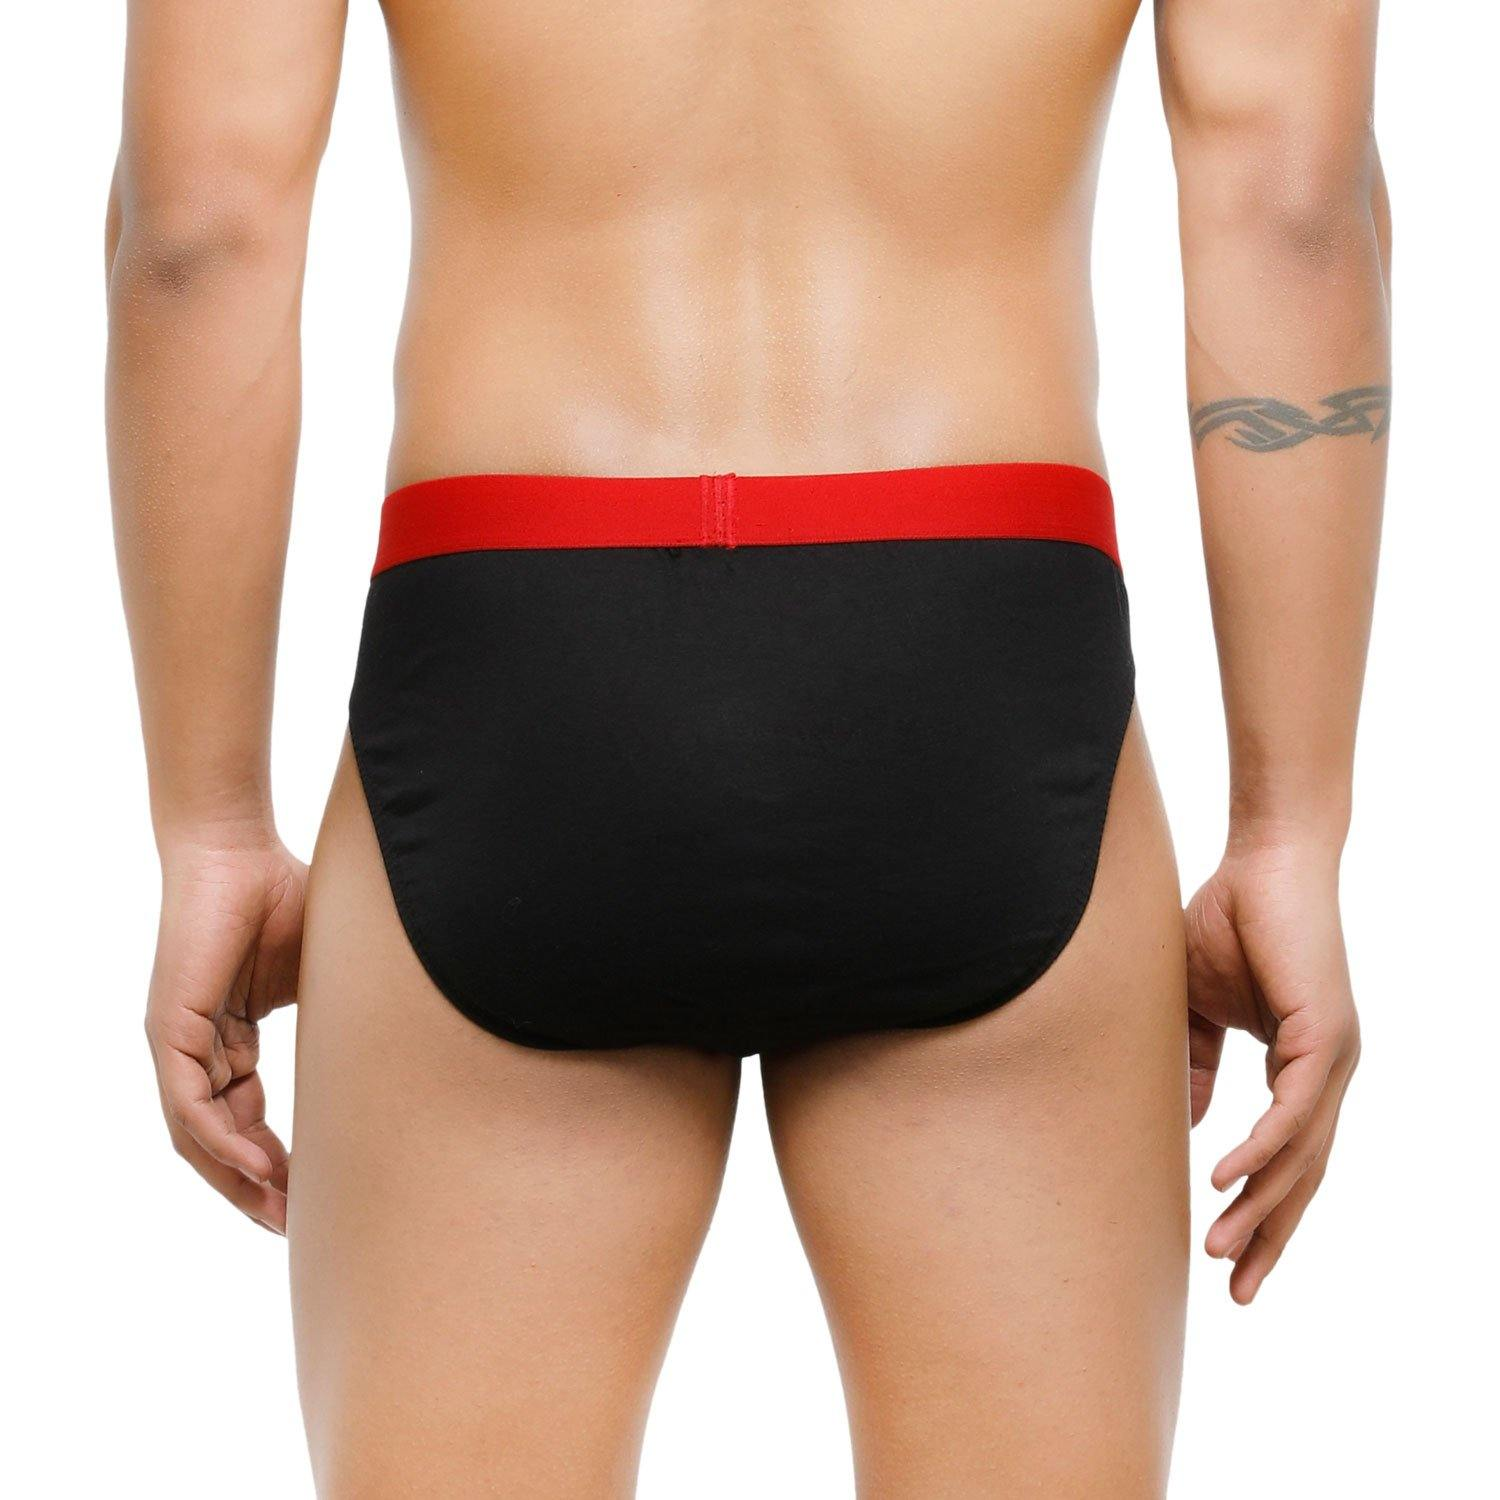 Men's Low-Rise Premia Cotton Briefs With Elasticated Band - Black